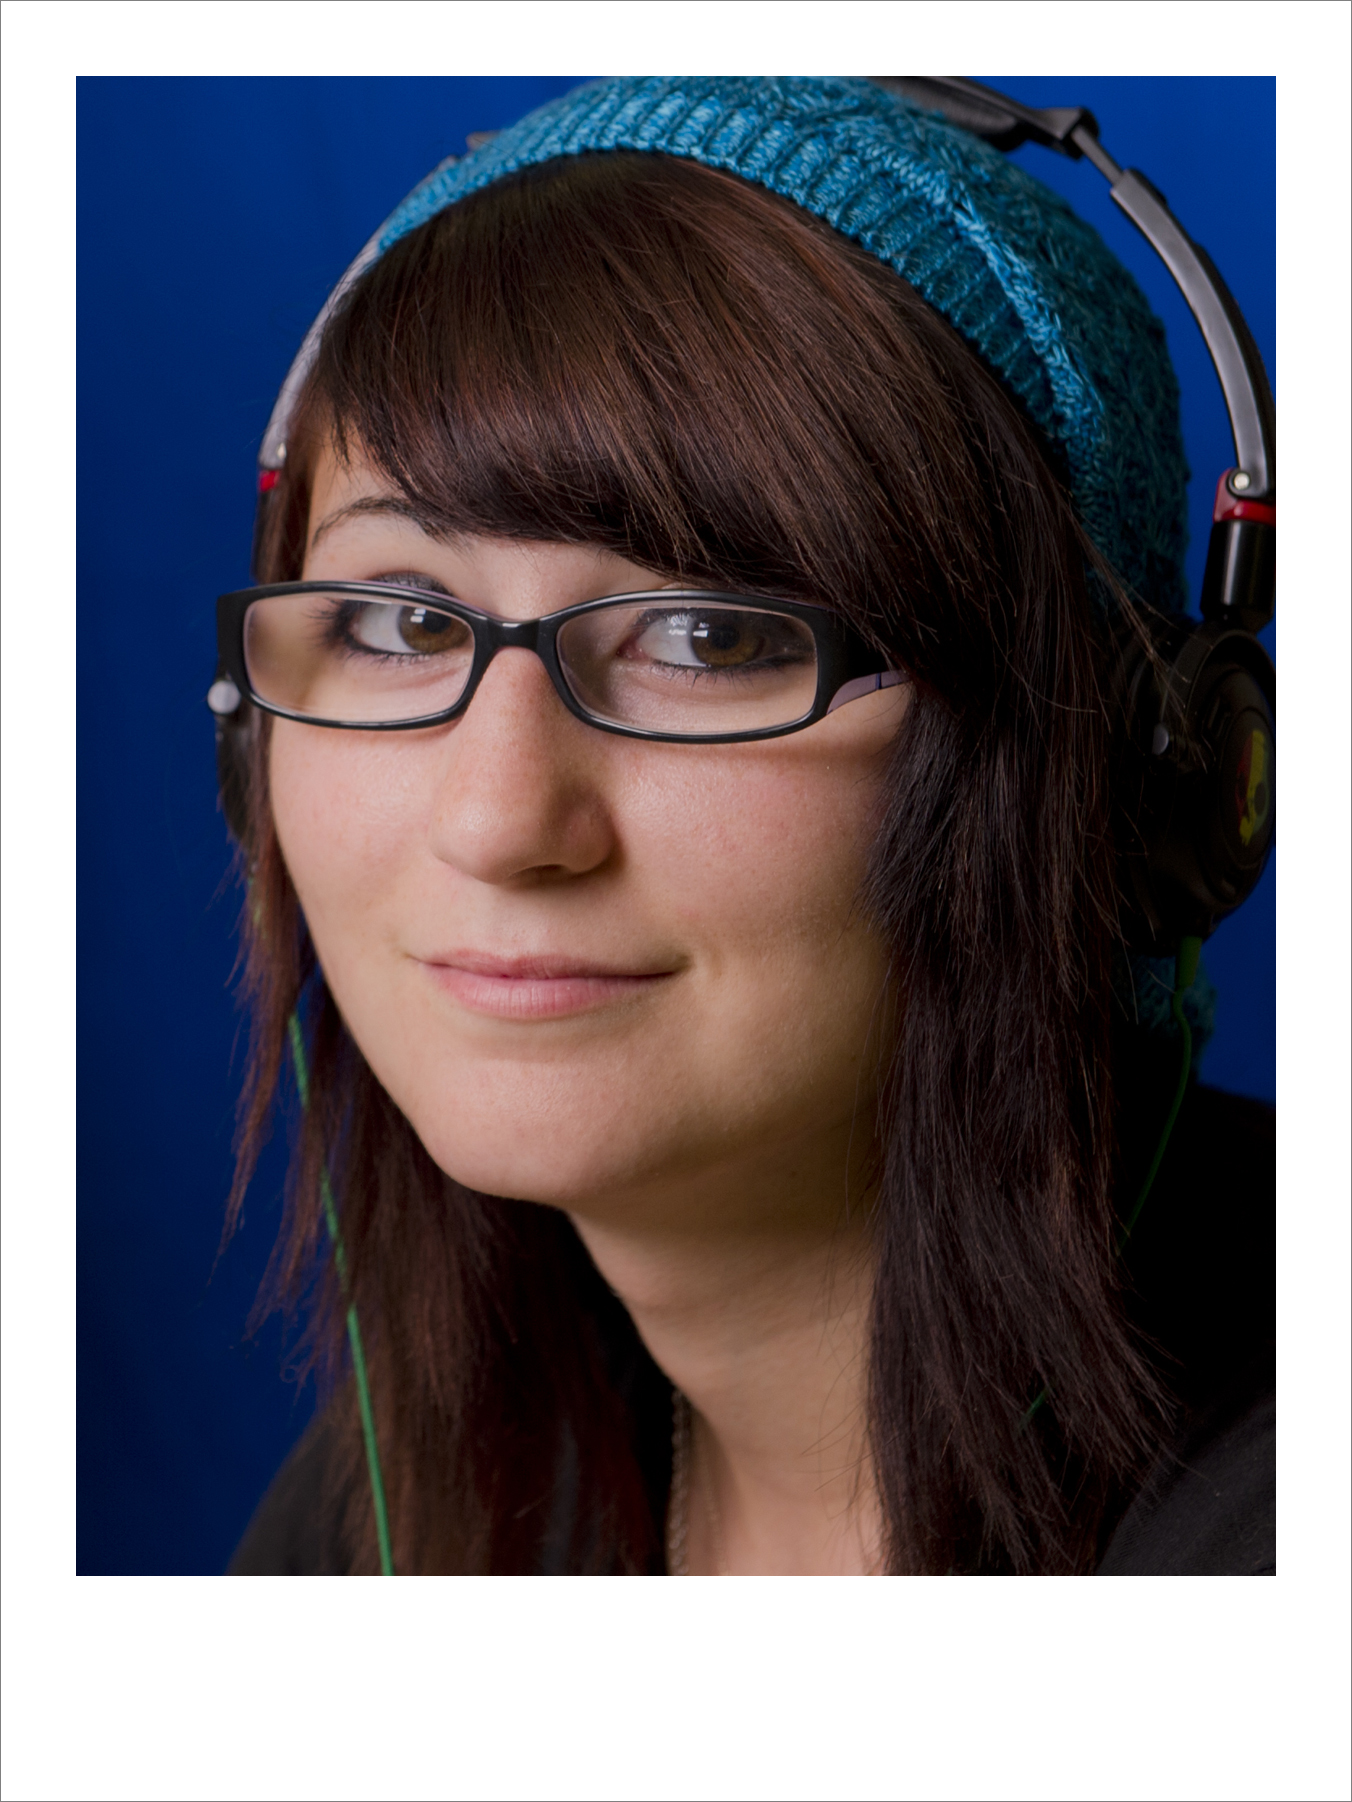 nadiea_headphones_headshot.JPG